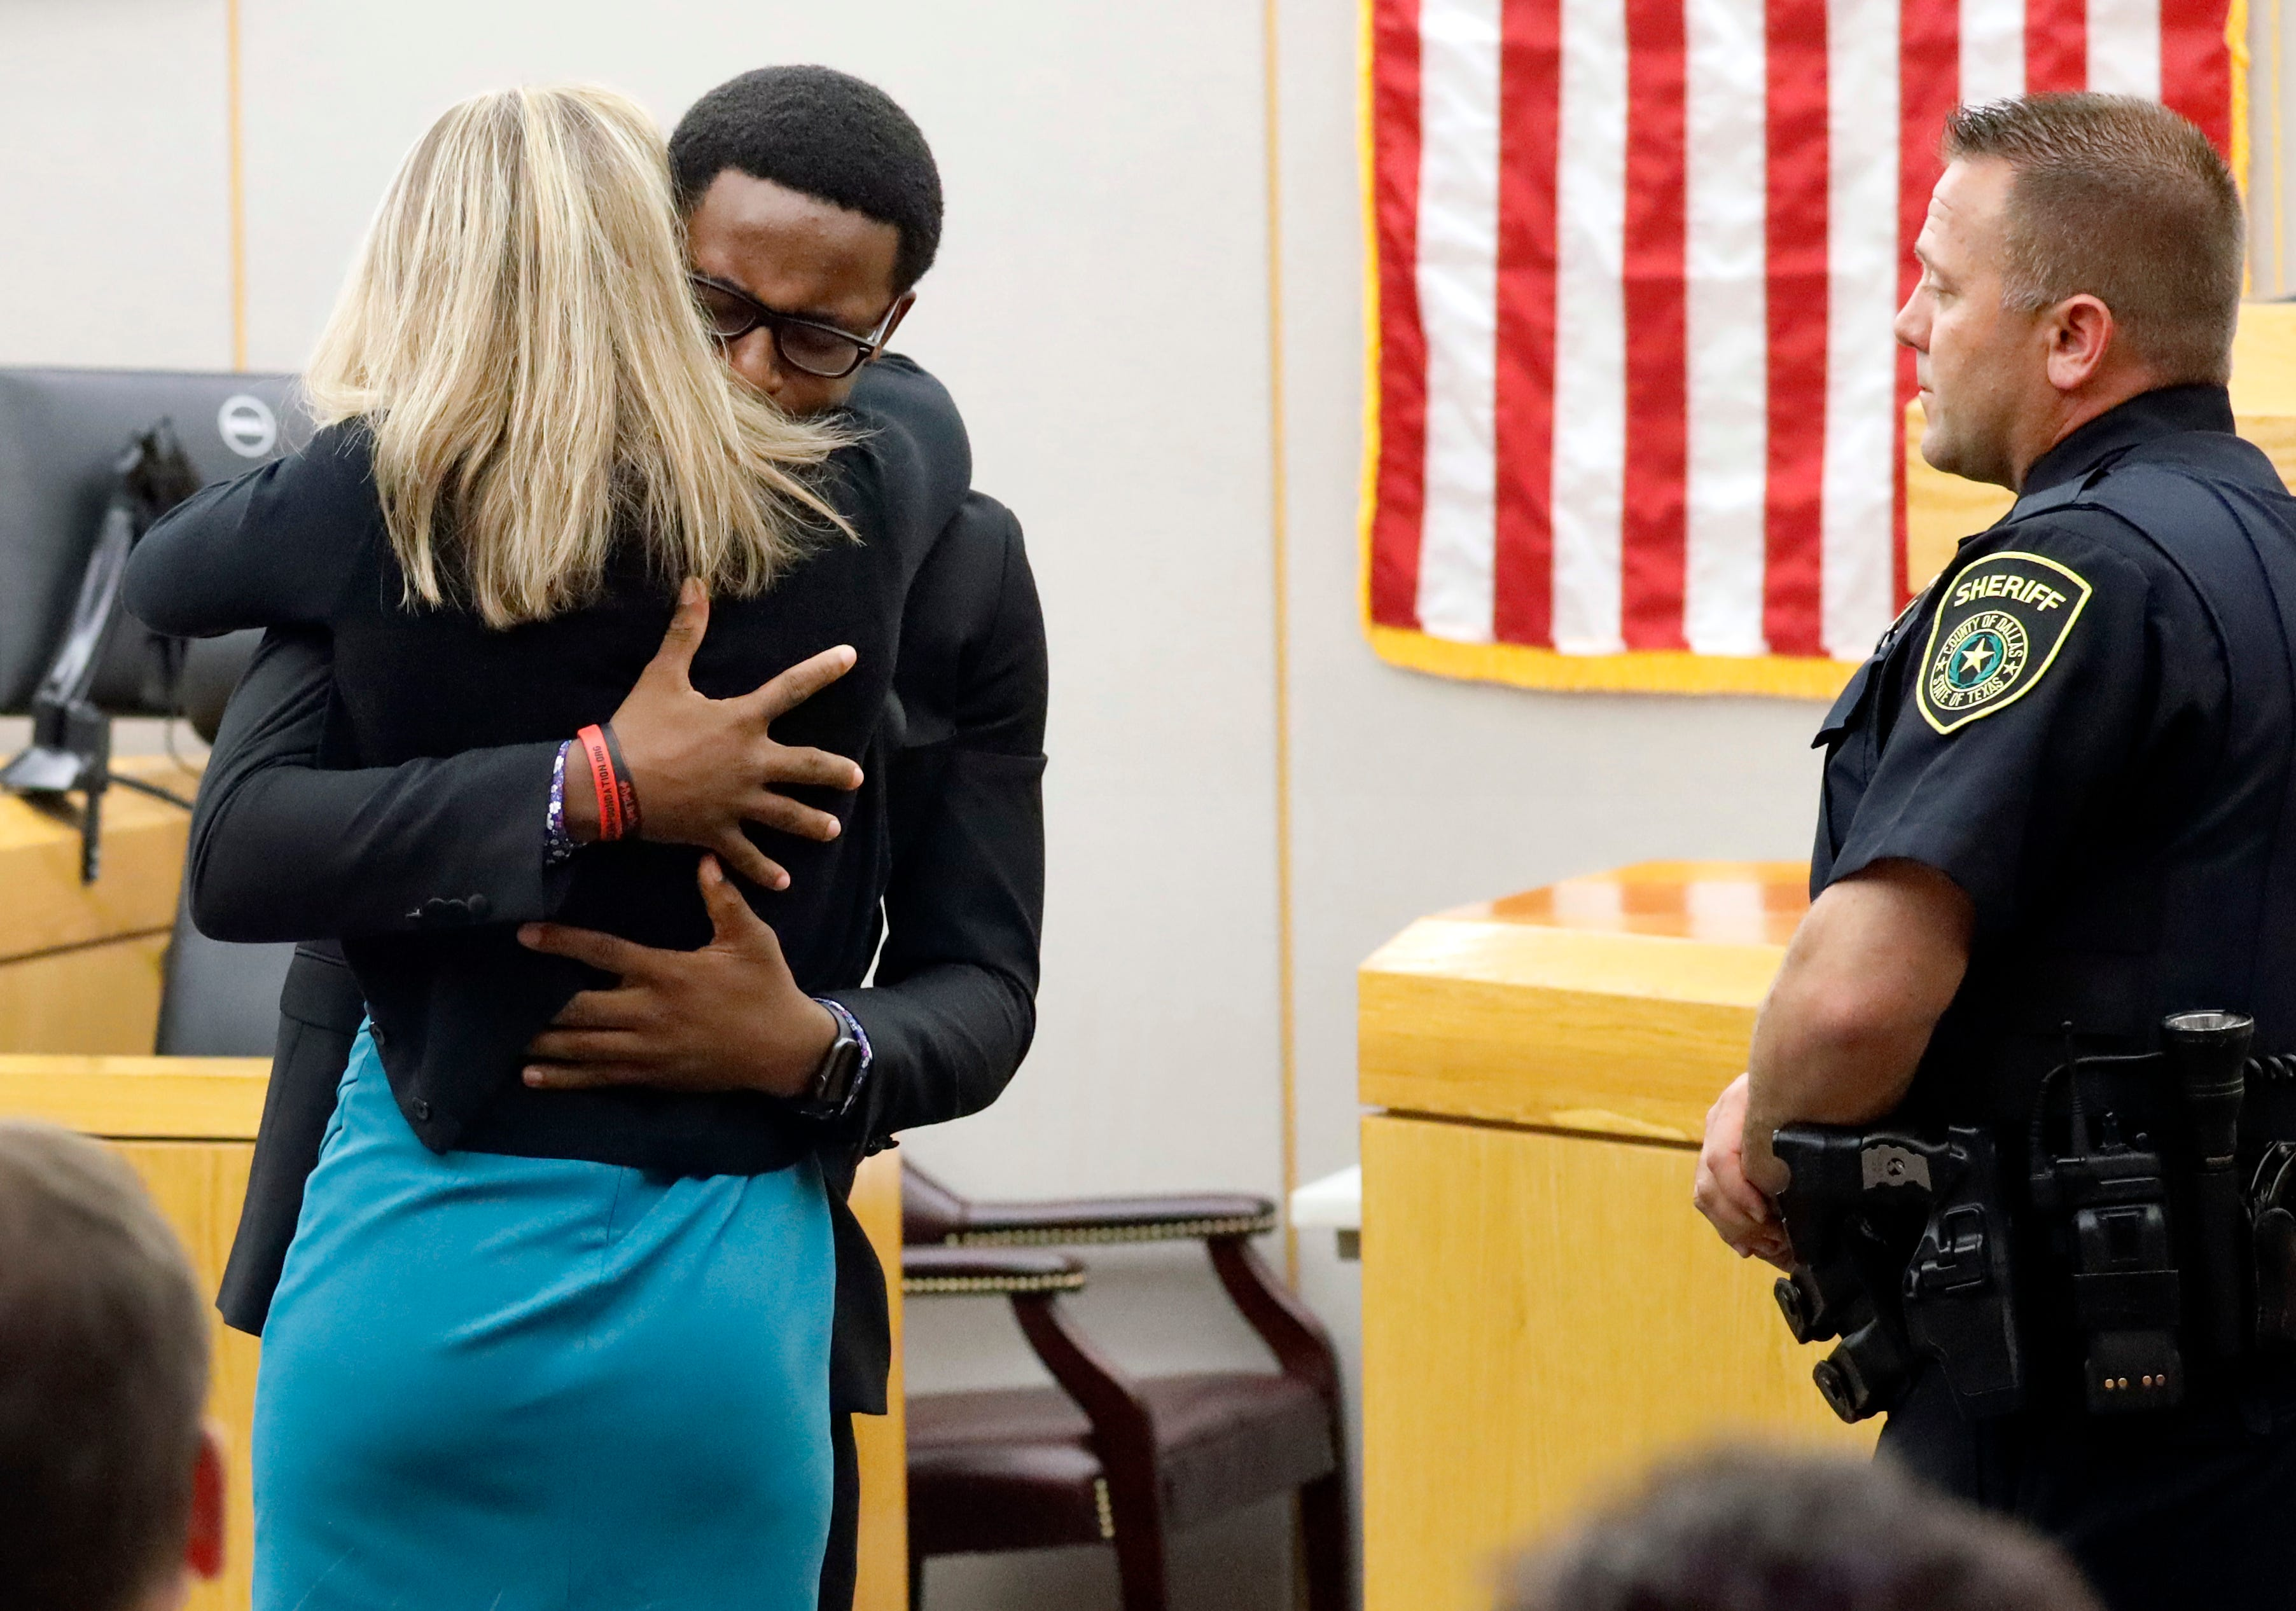 'I want the best for you': Botham Jean's brother hugs Amber Guyger after her sentencing